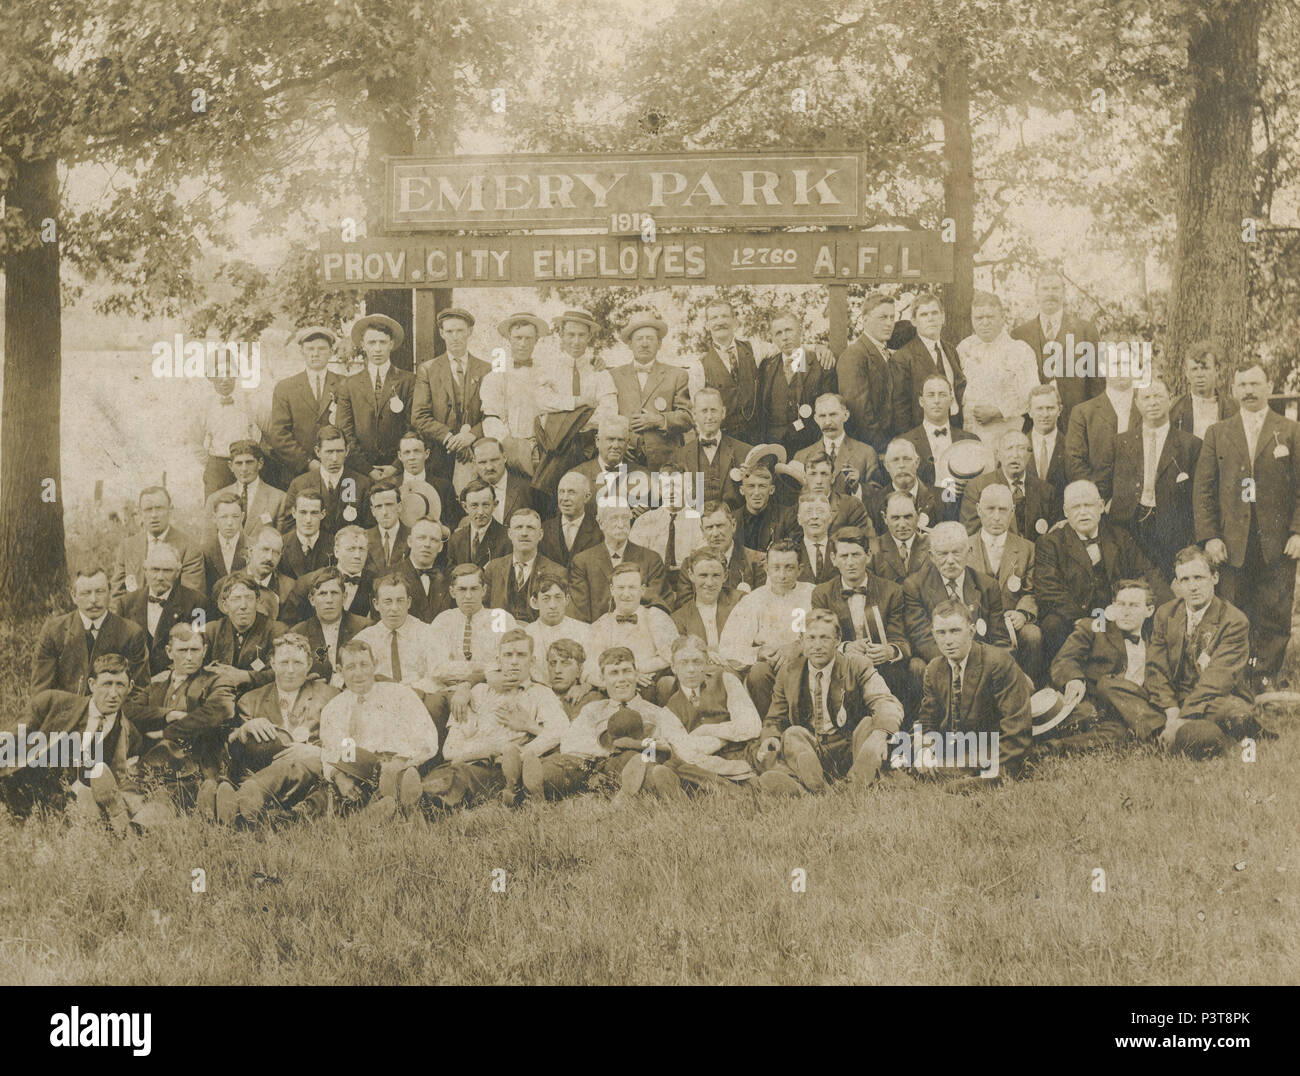 Antique 1913 photograph, City Employees 12760 AFL group photograph at Emery Park, Providence, Rhode Island. SOURCE: ORIGINAL PHOTOGRAPH - Stock Image